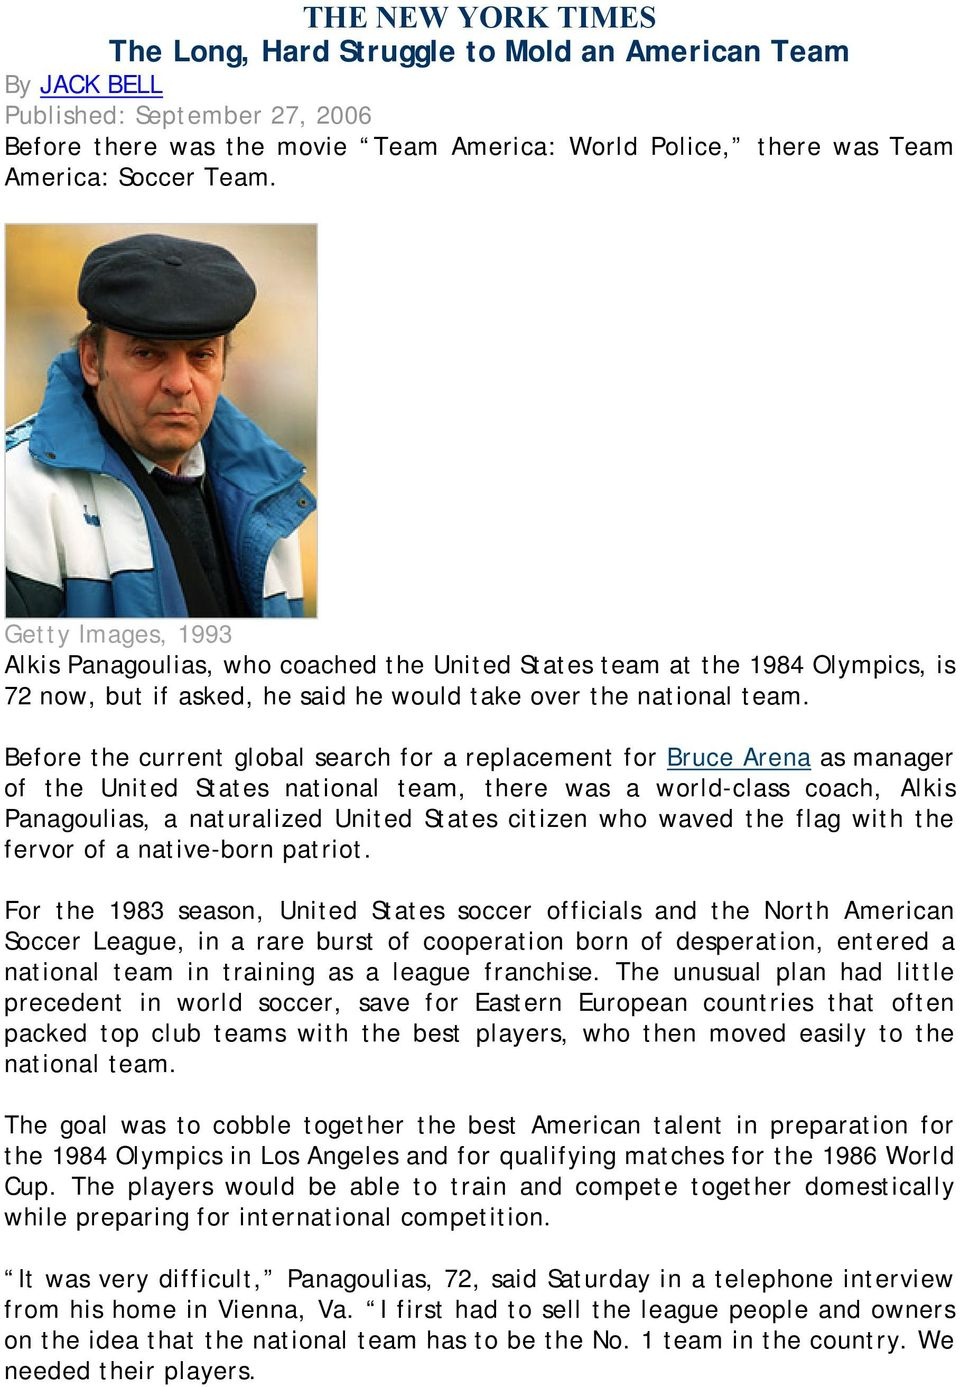 Before the current global search for a replacement for Bruce Arena as manager of the United States national team, there was a world-class coach, Alkis Panagoulias, a naturalized United States citizen